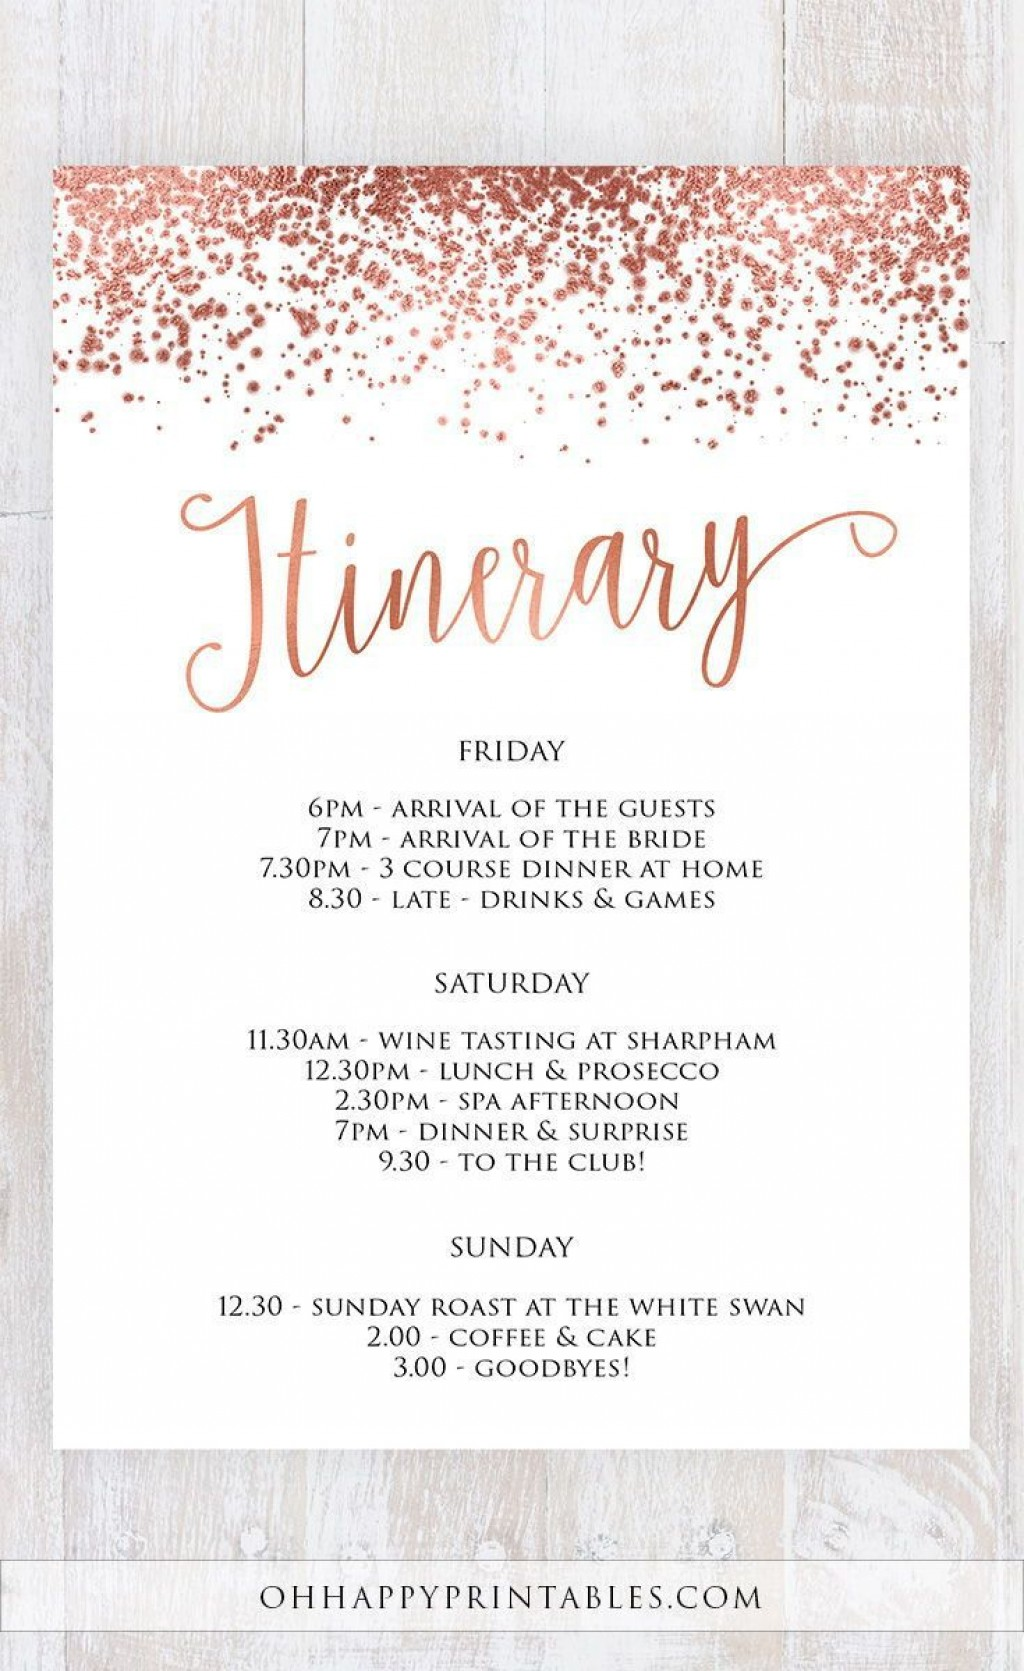 007 Incredible Bachelorette Party Itinerary Template Free Idea  DownloadLarge